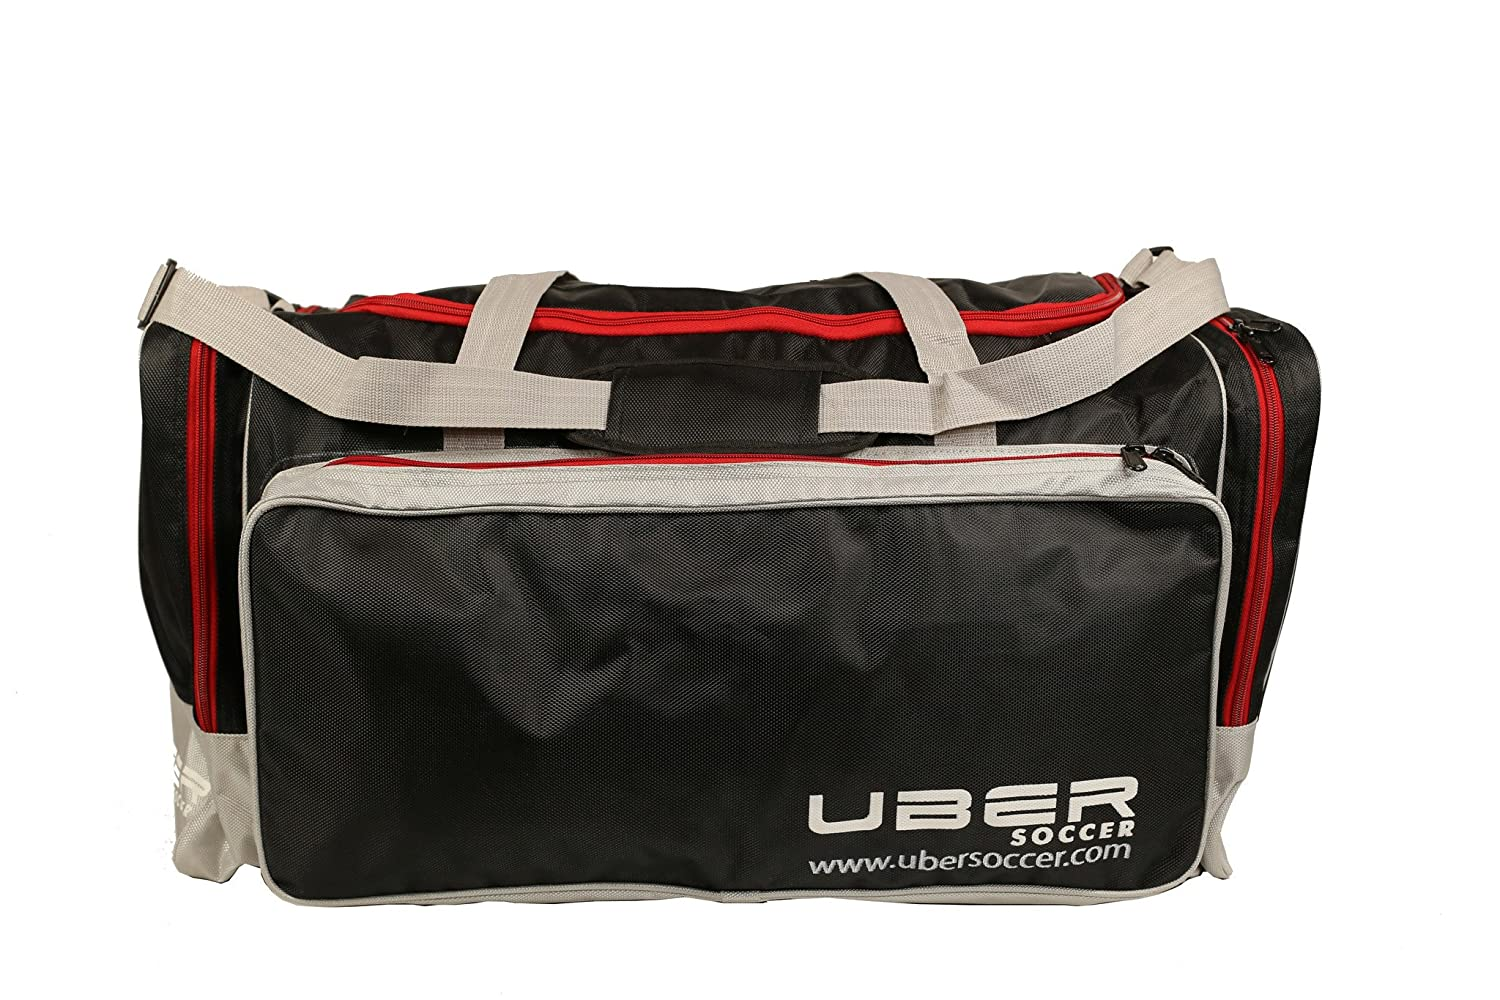 uBer Soccer Team Issue PlayerスポーツDuffle bag-gymバッグ B00U9YZNM2 Large|クラブ Large